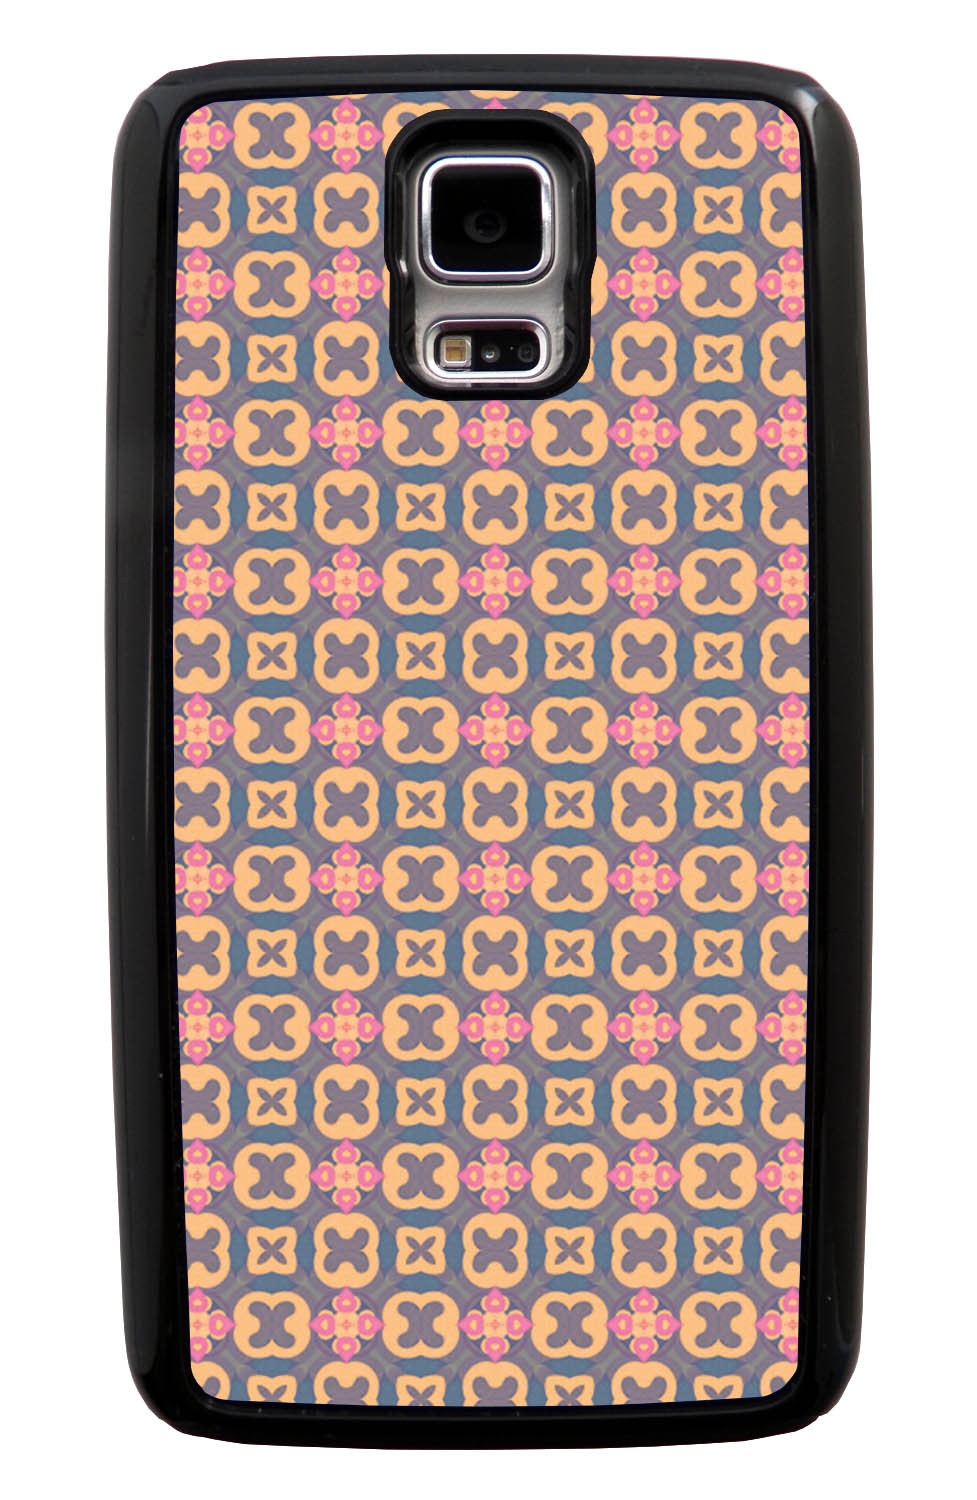 Samsung Galaxy S5 / SV Abstract Case - Pink and Blue - Flower Petal Like - Black Tough Hybrid Case